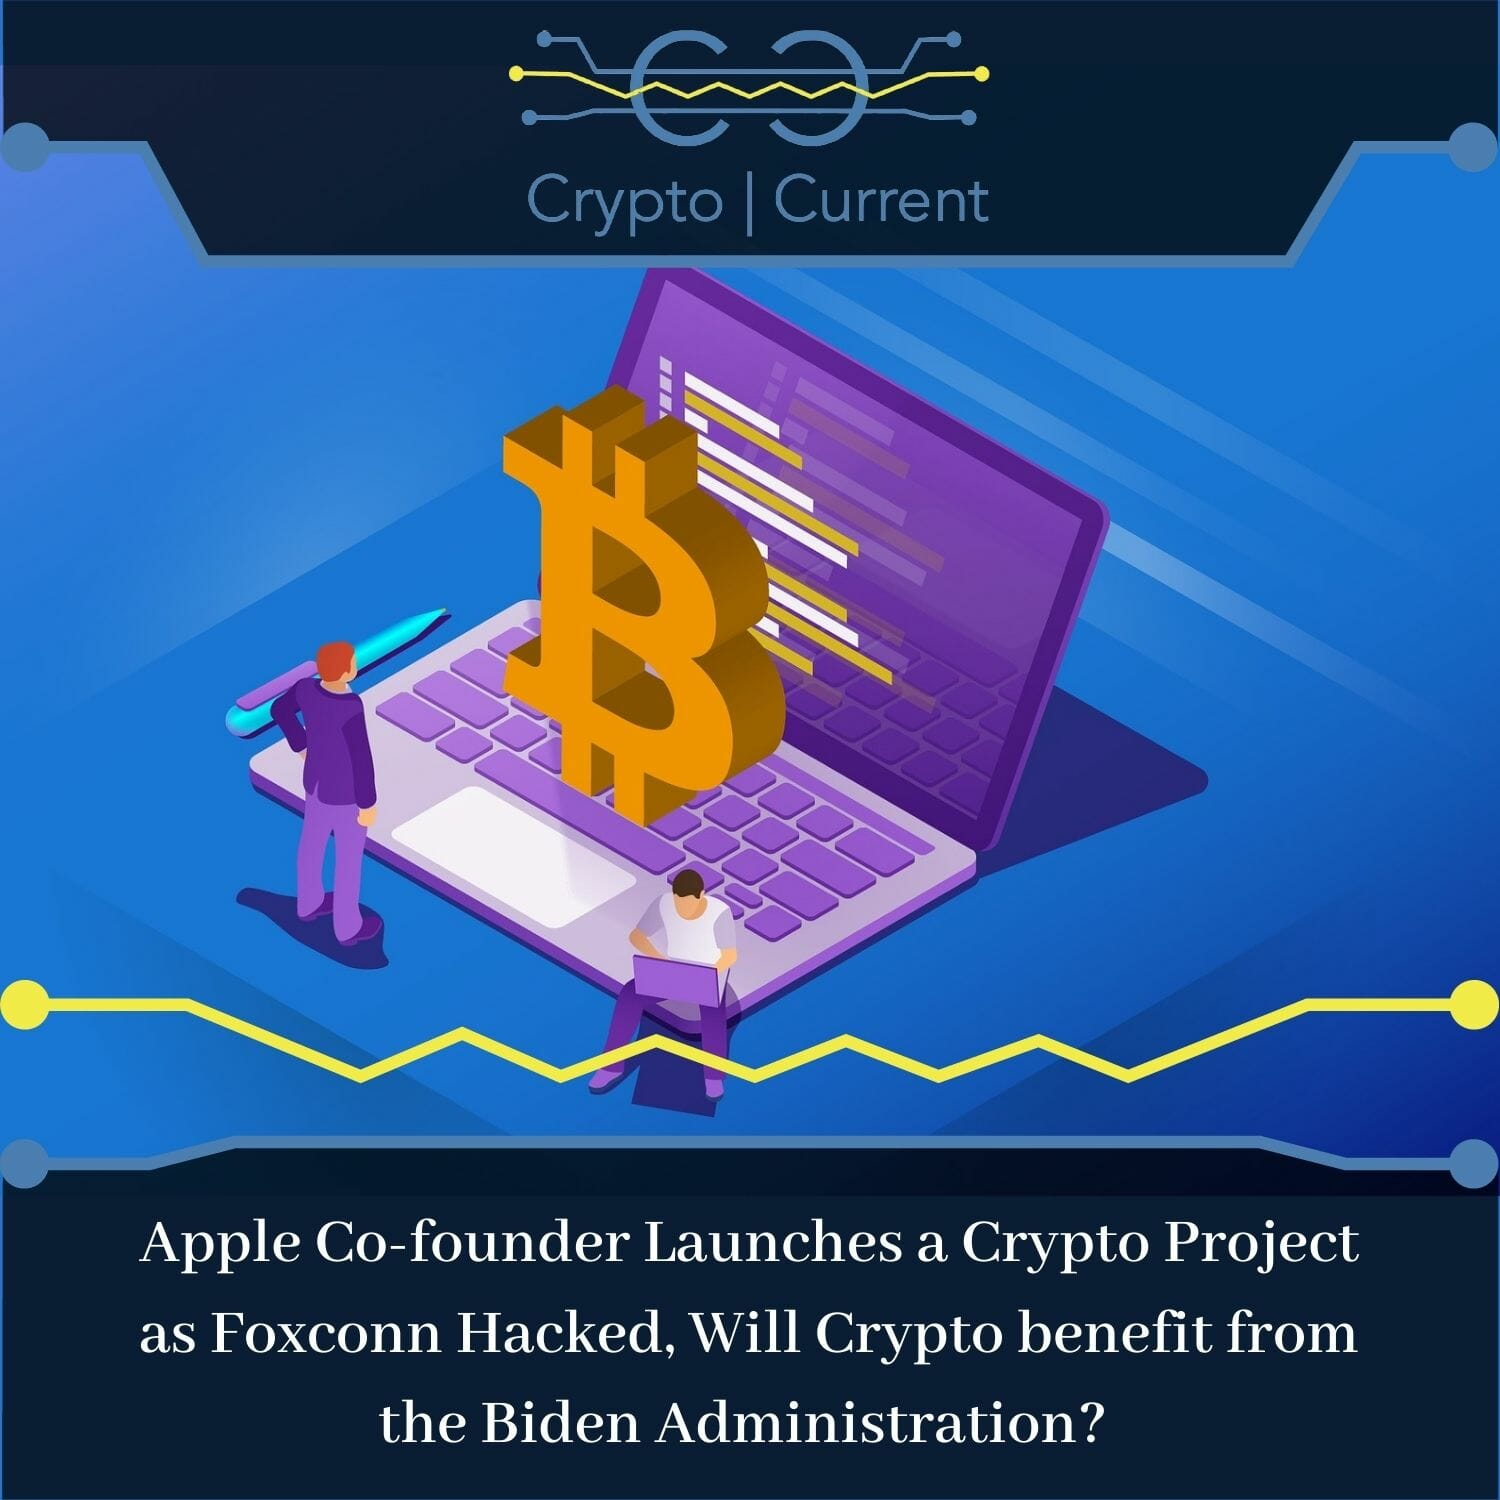 Apple Co-founder Launches a Crypto Project as Foxconn Hacked, Will Crypto benefit from the Biden Administration